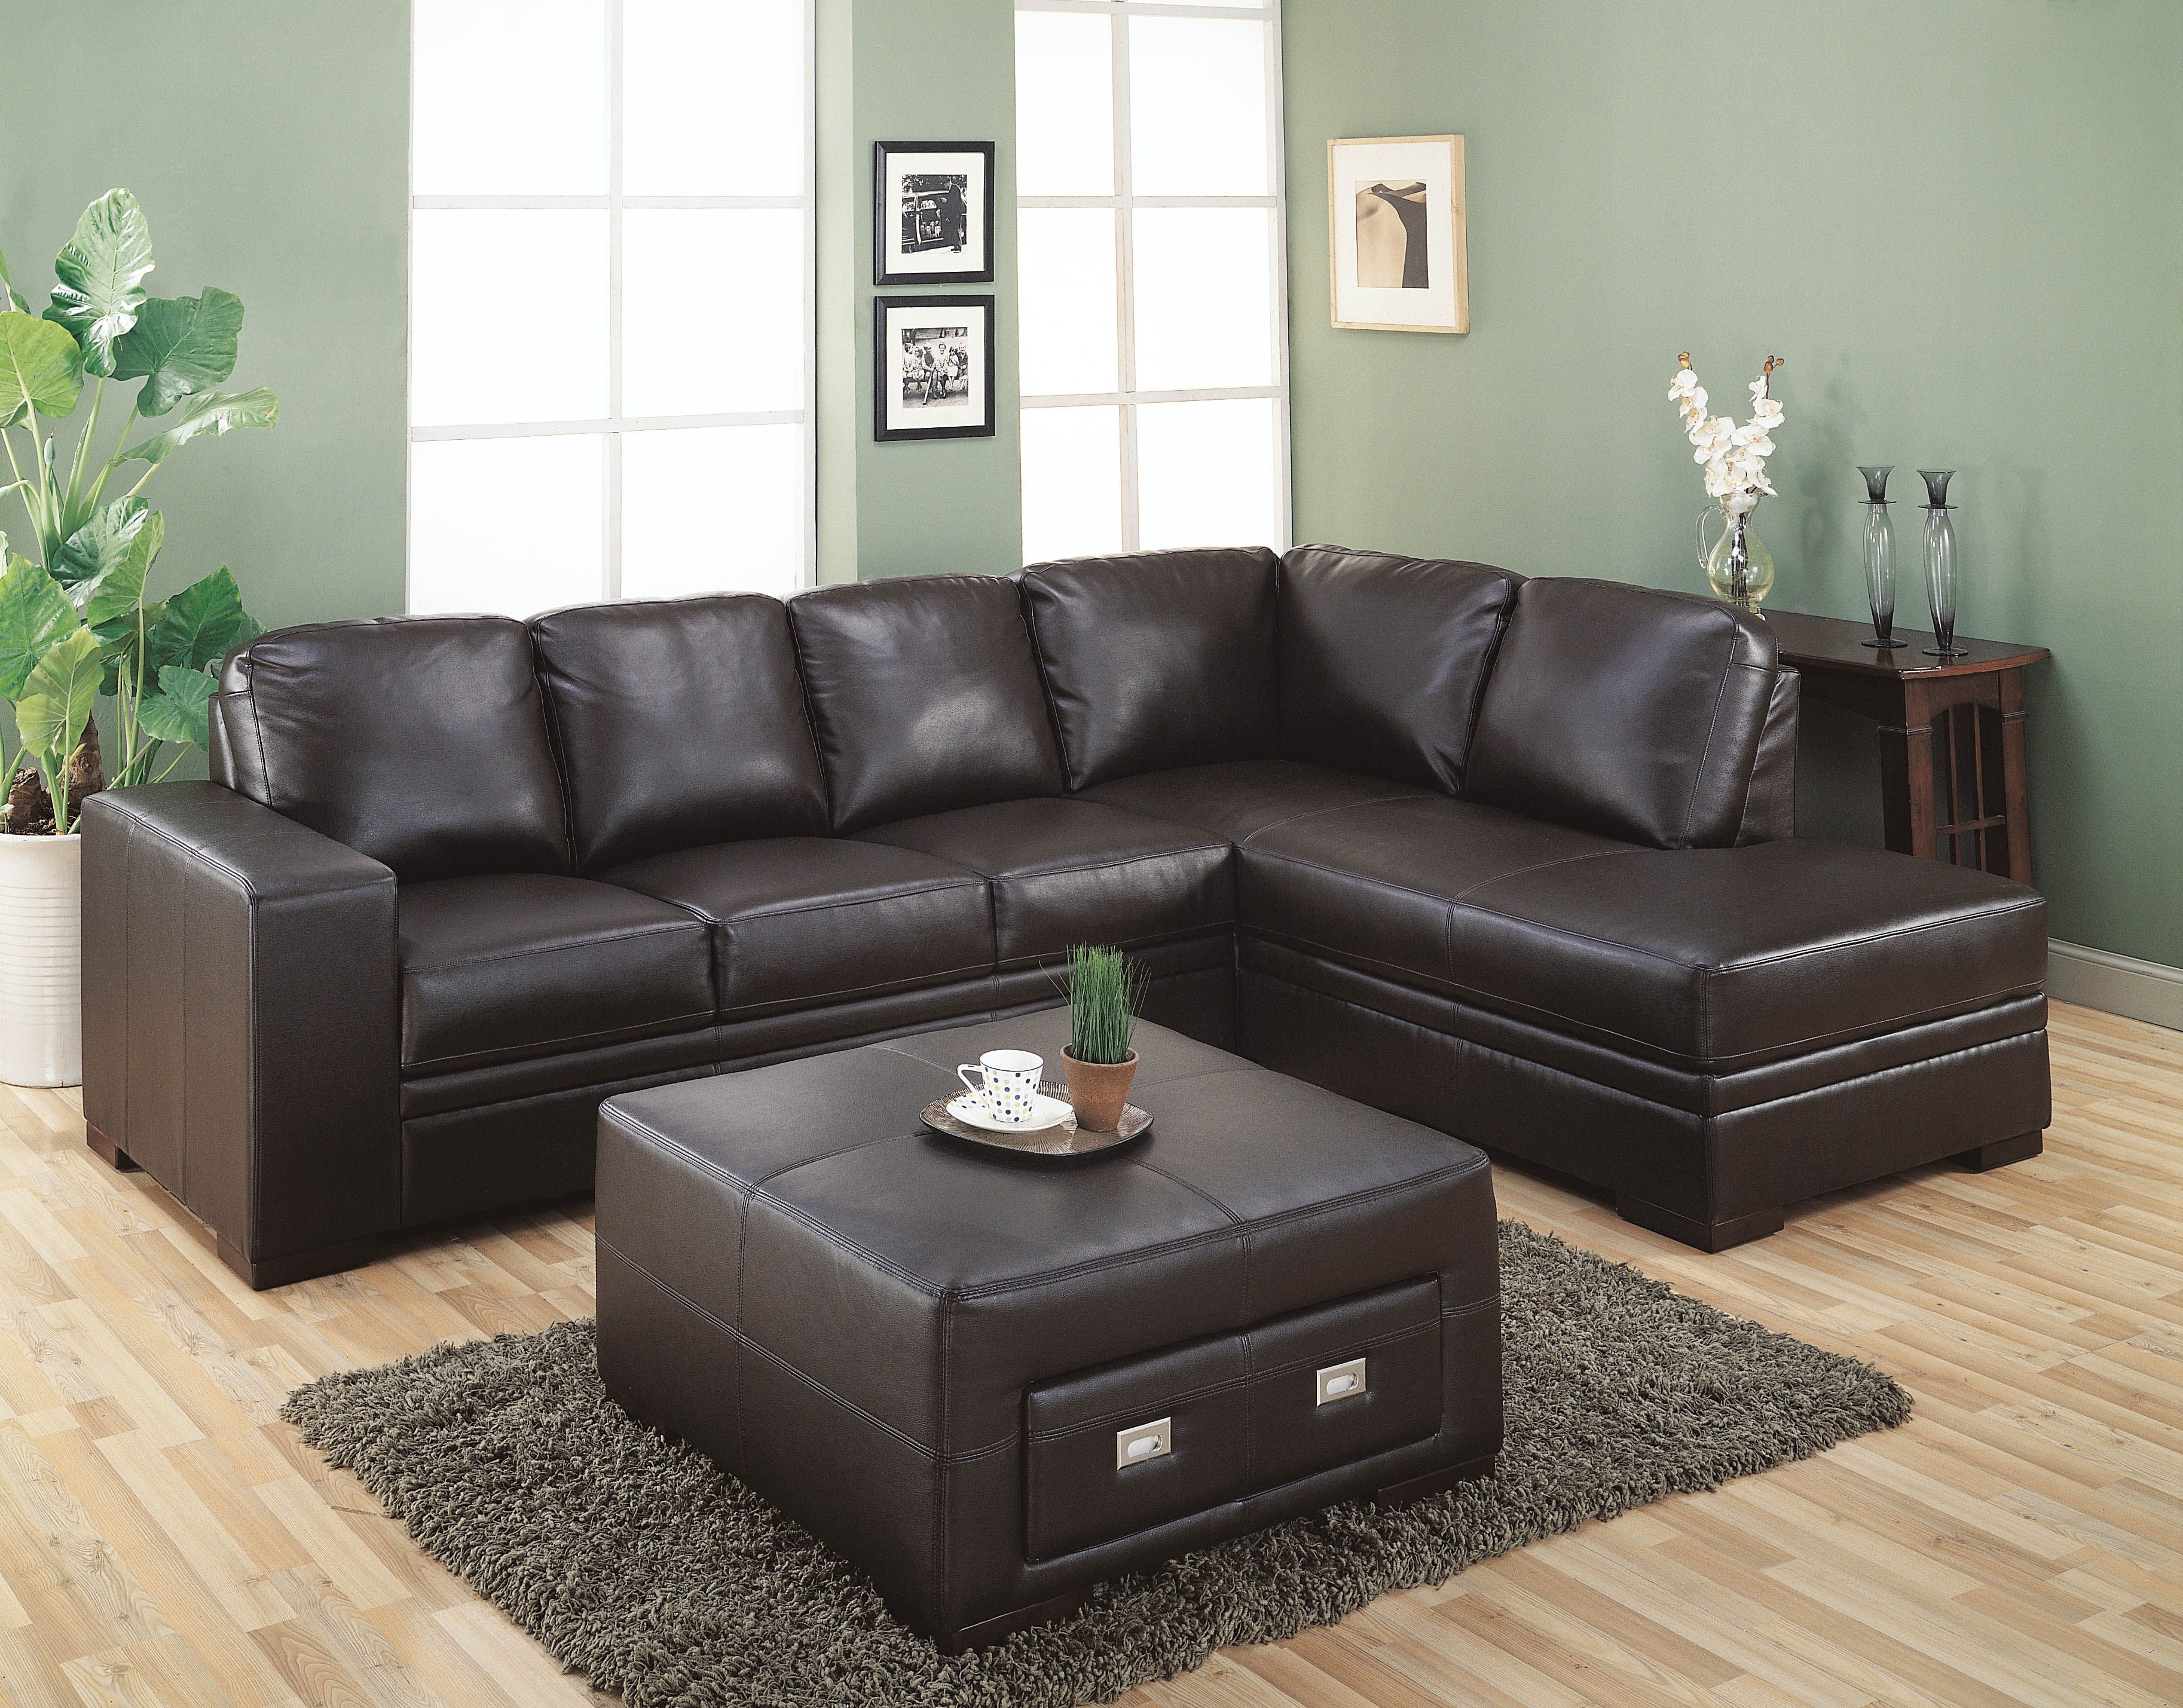 Recent Very Popular Sectional Dark Brown Leather Couch With Square Regarding Leather Sofas With Storage (View 18 of 20)